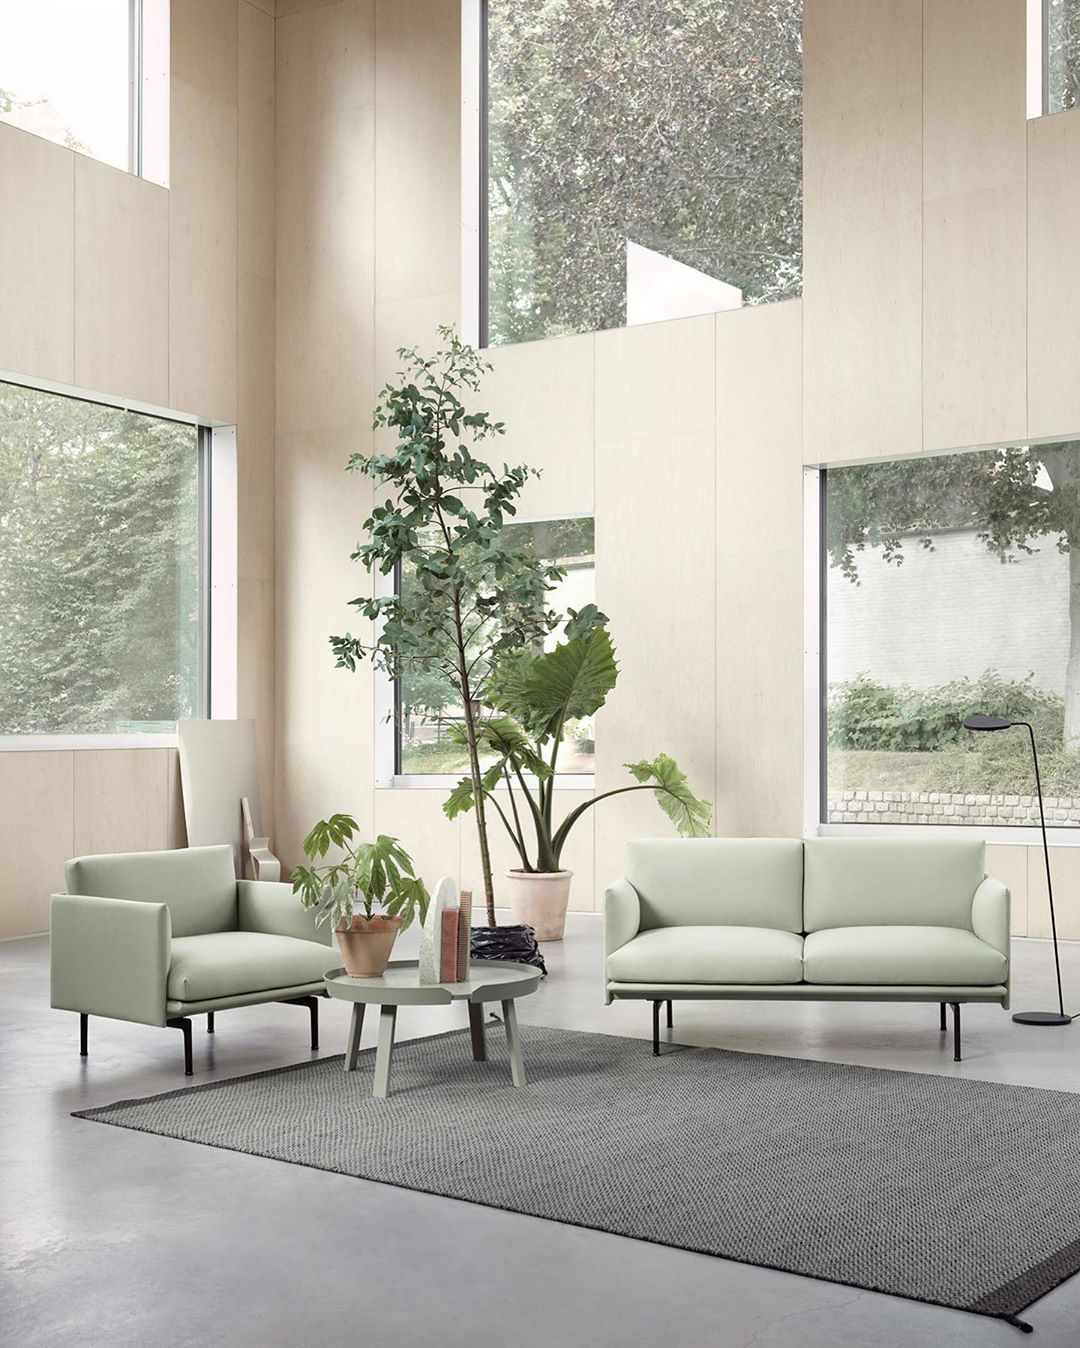 Biophilic sitting area in a room with very high ceilings and Tranquil Dawn furniture.